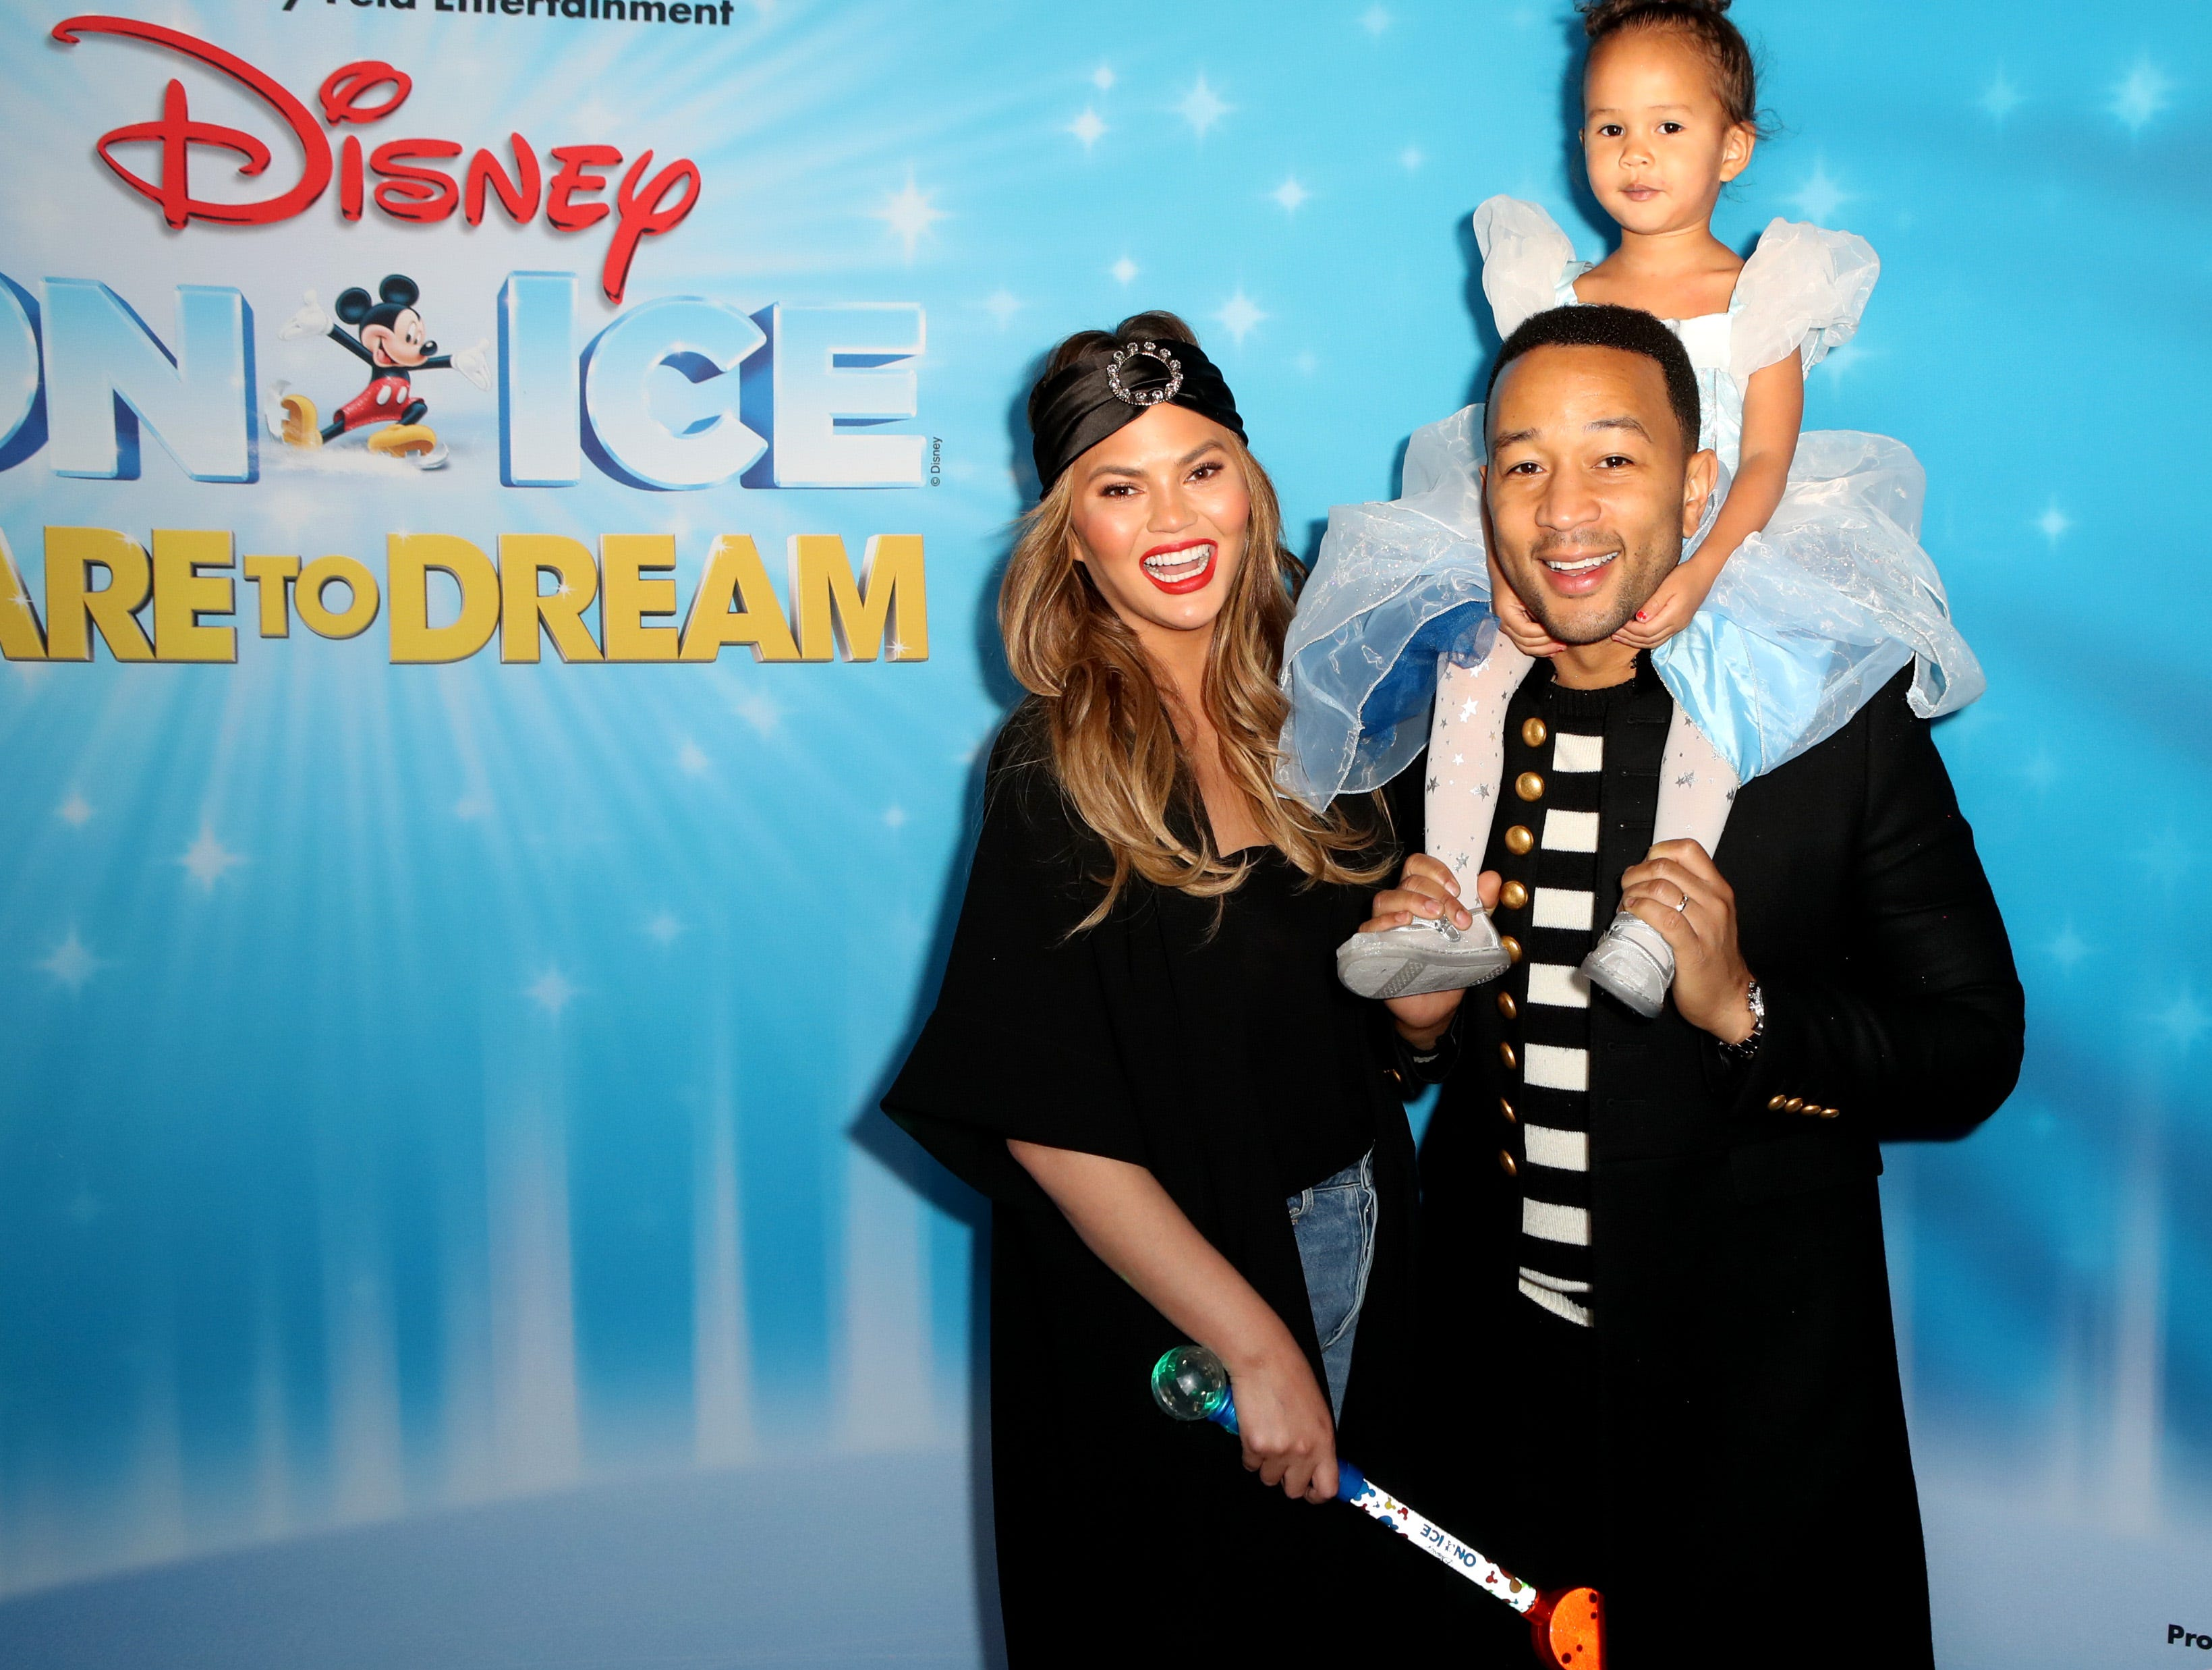 UNSPECIFIED,  - JANUARY 01: Chrissy Teigen, John Legend and daughter Luna attend Disney On Ice Presents Dare to Dream Celebrity Skating Party at Staples Center on December 14, 2018 in Los Angeles, California. (Photo by Ari Perilstein/Ari Perilstein / Getty Images for Feld Entertainment, Inc) ORG XMIT: 775231180 ORIG FILE ID: 1082728010